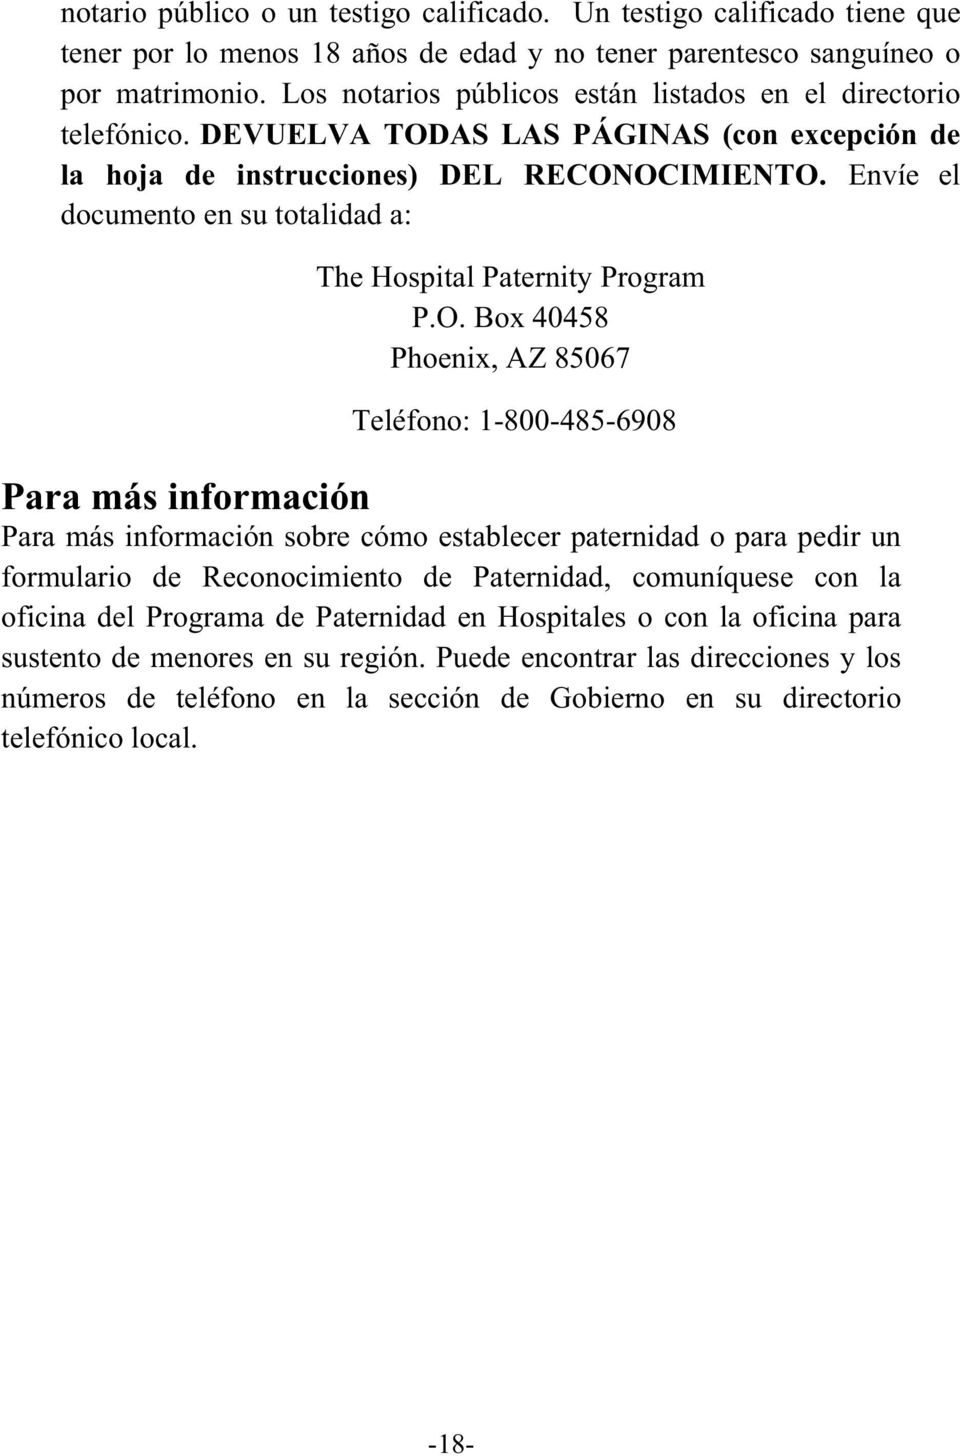 Envíe el documento en su totalidad a: The Hospital Paternity Program P.O.